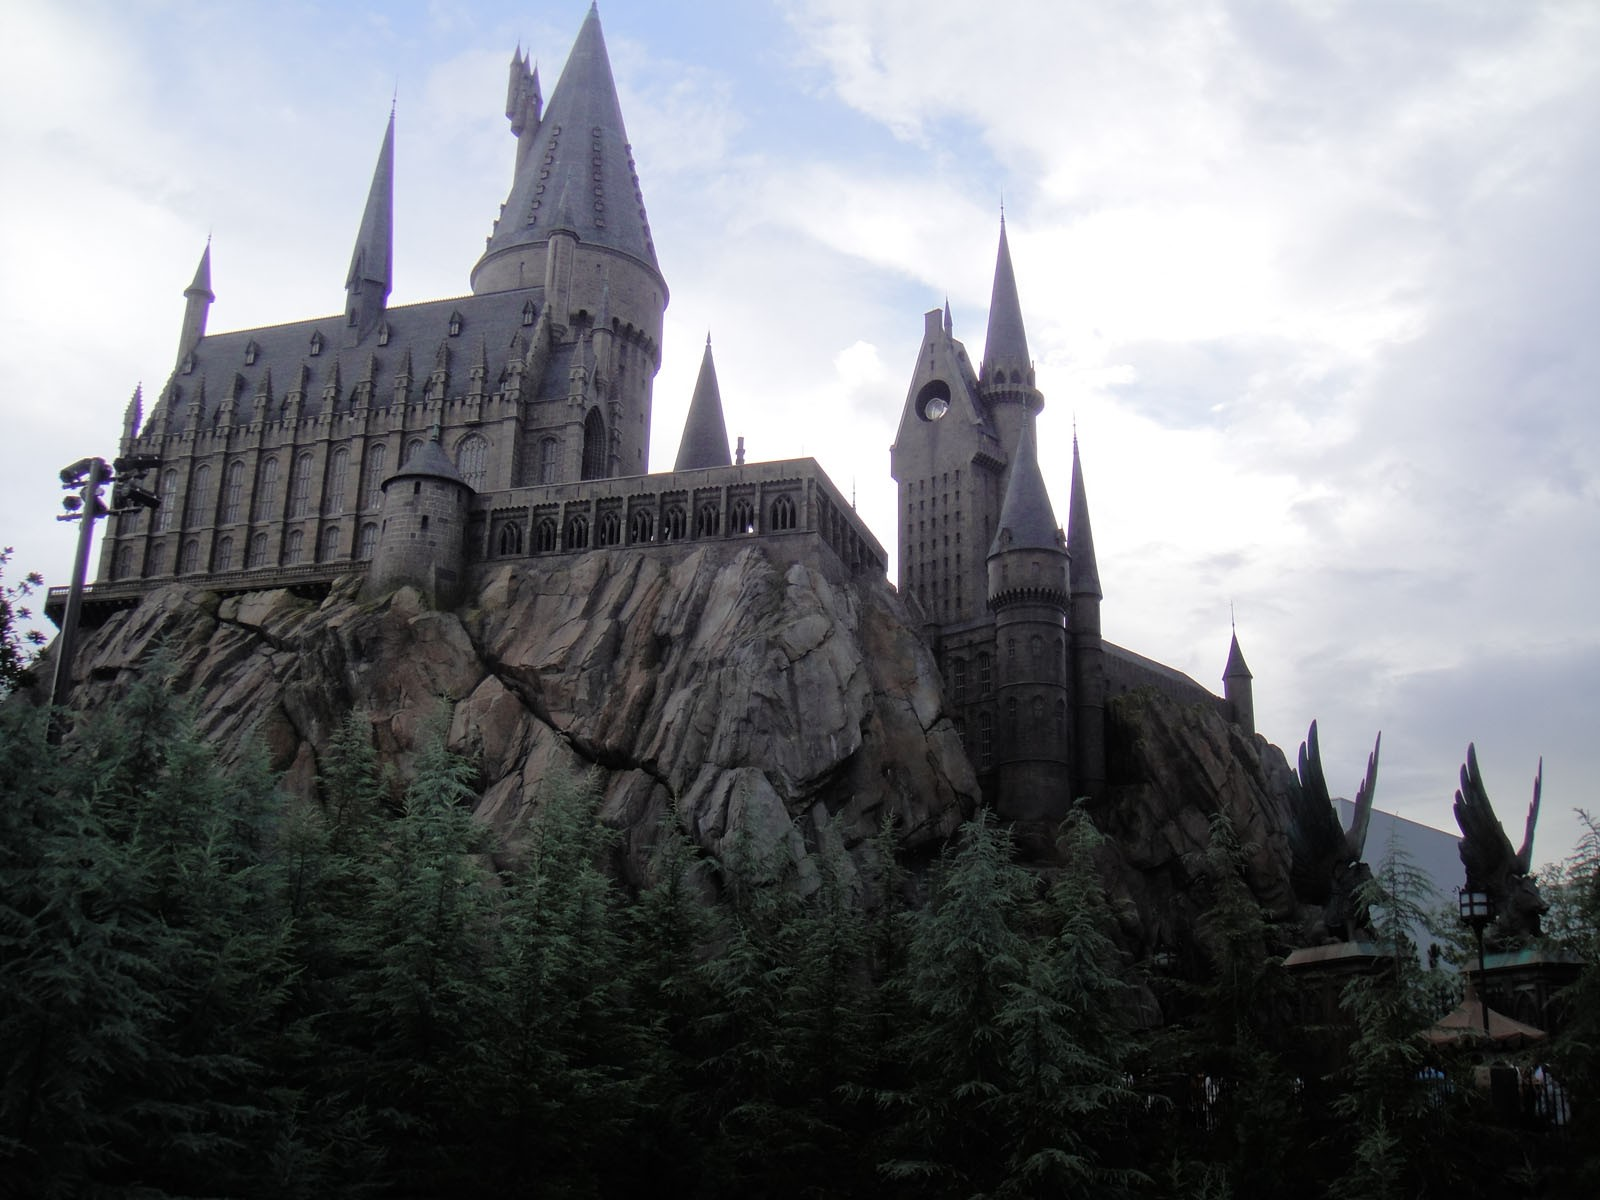 Wizarding_World_of_Harry_Potter_-_Hogwarts_(5013550261)